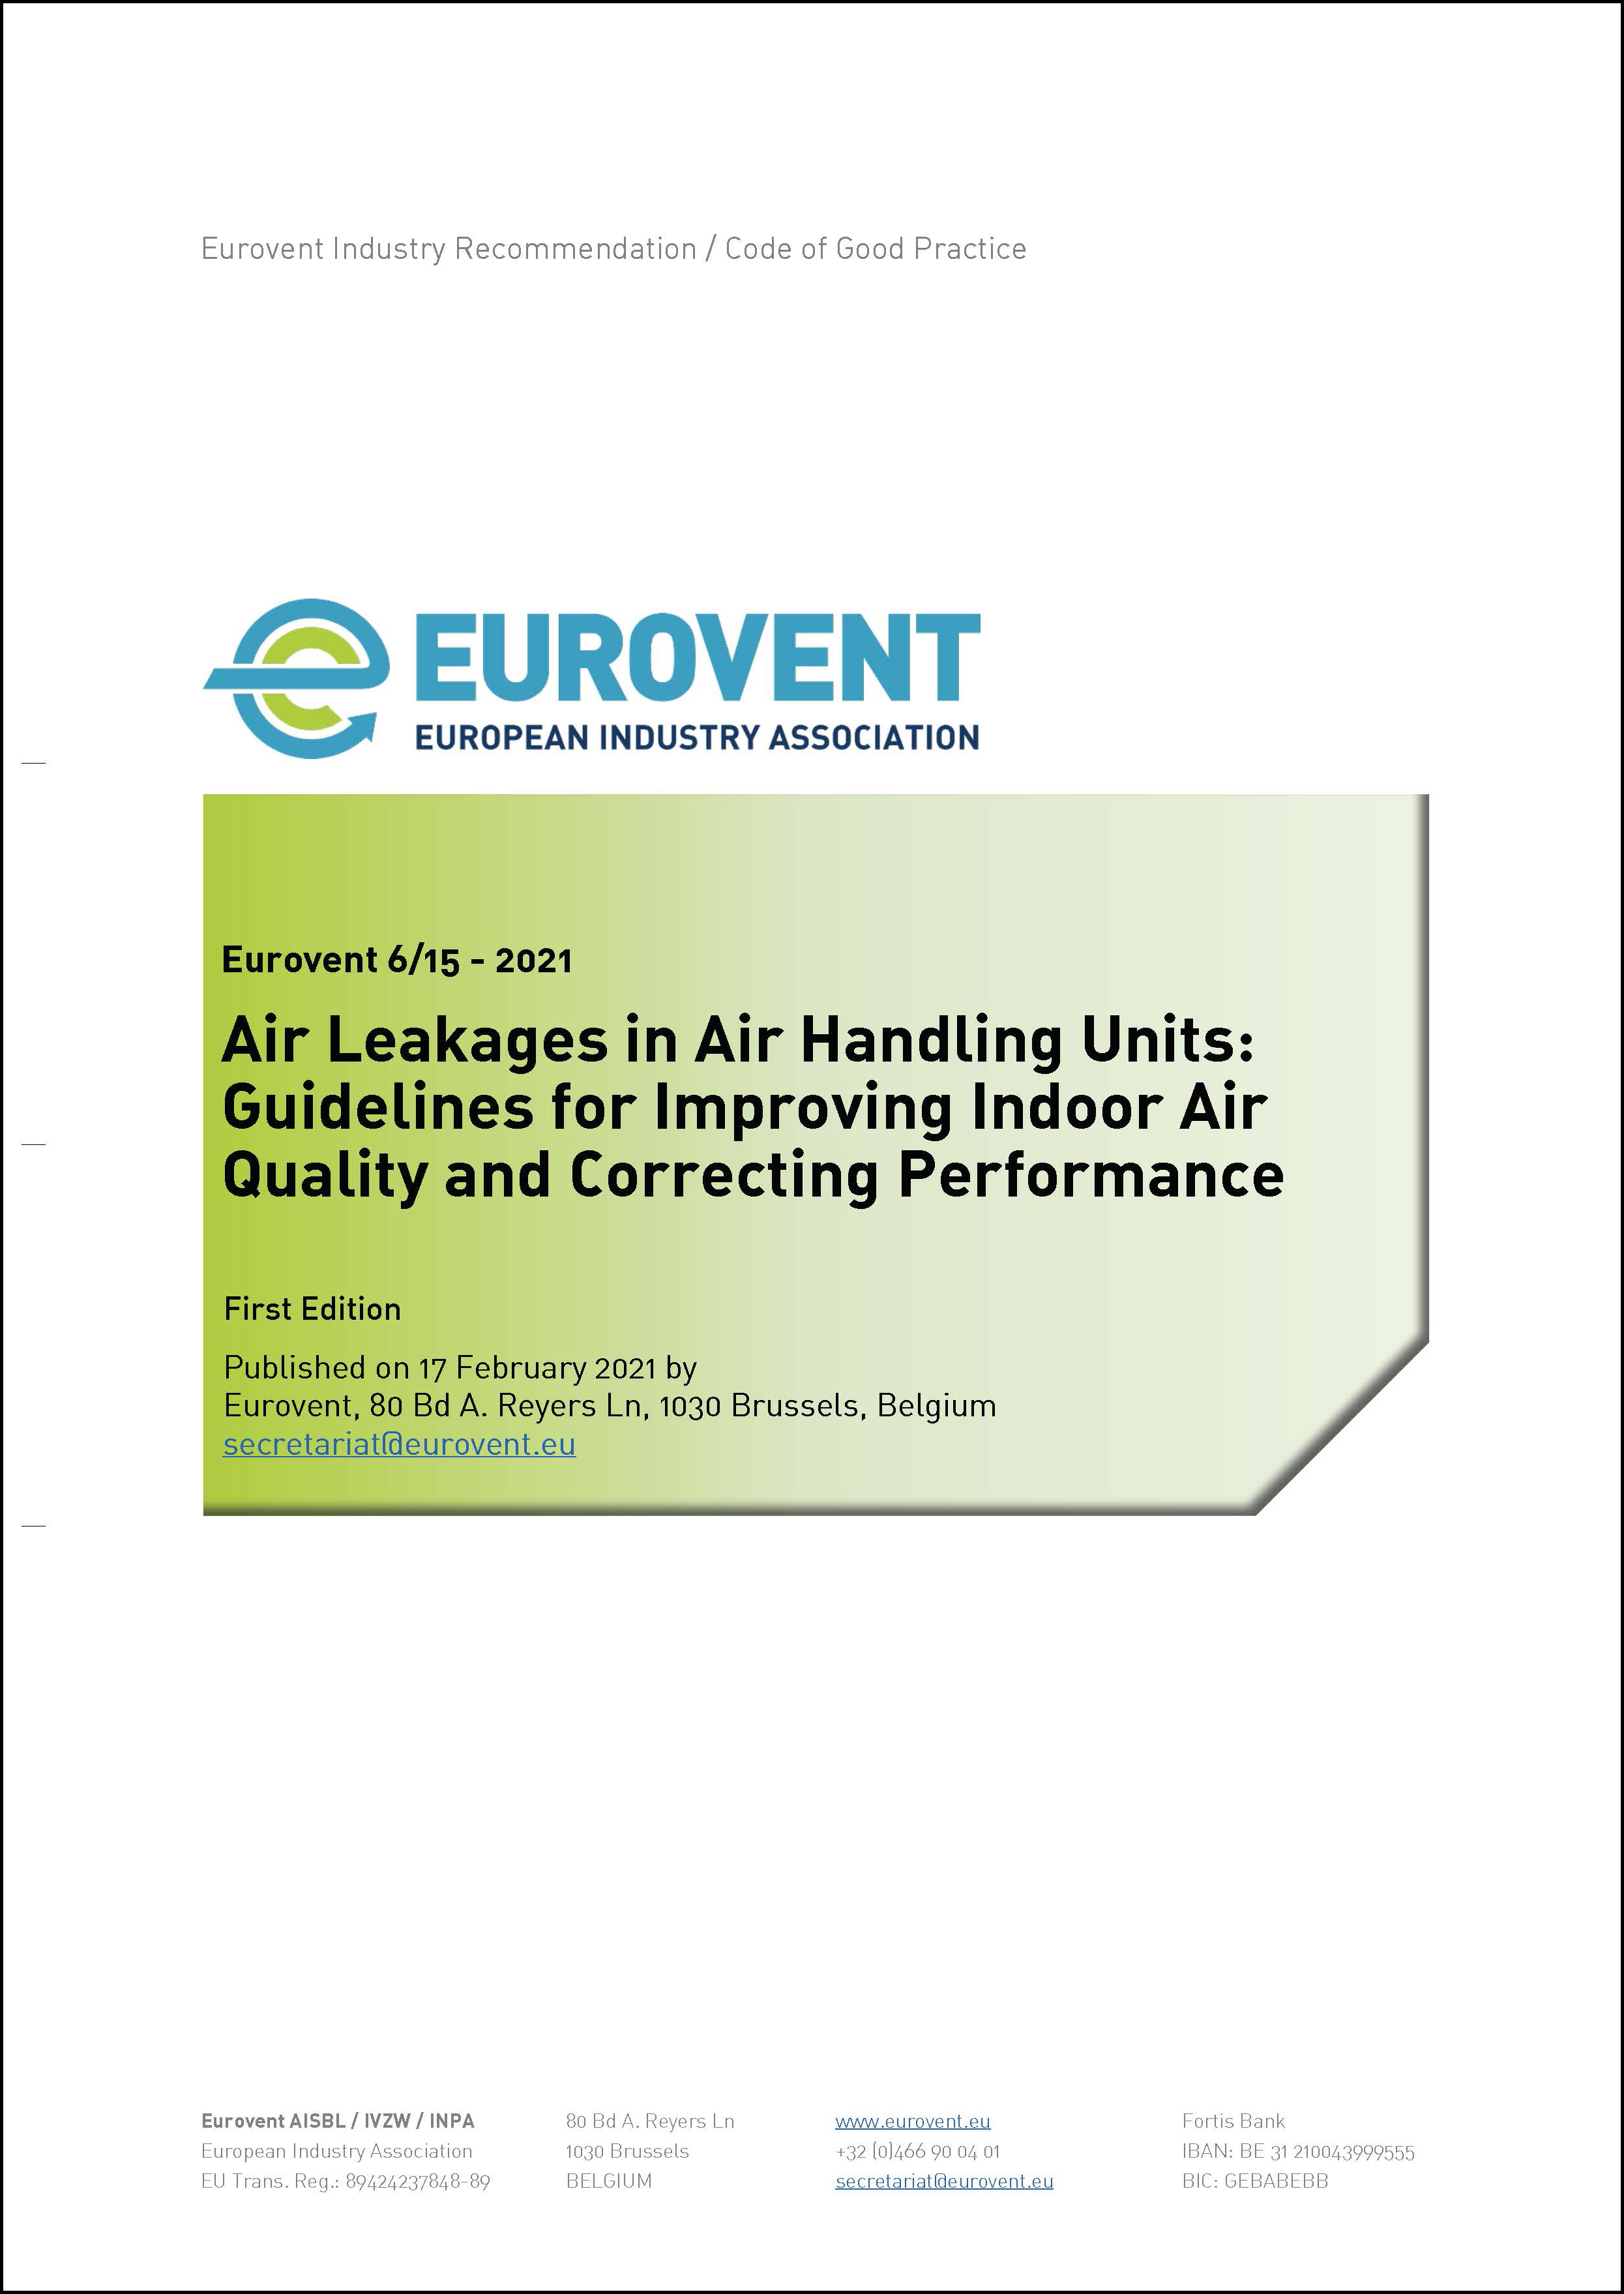 Eurovent 6/15 - 2021: Air Leakages in Air Handling Units - First Edition